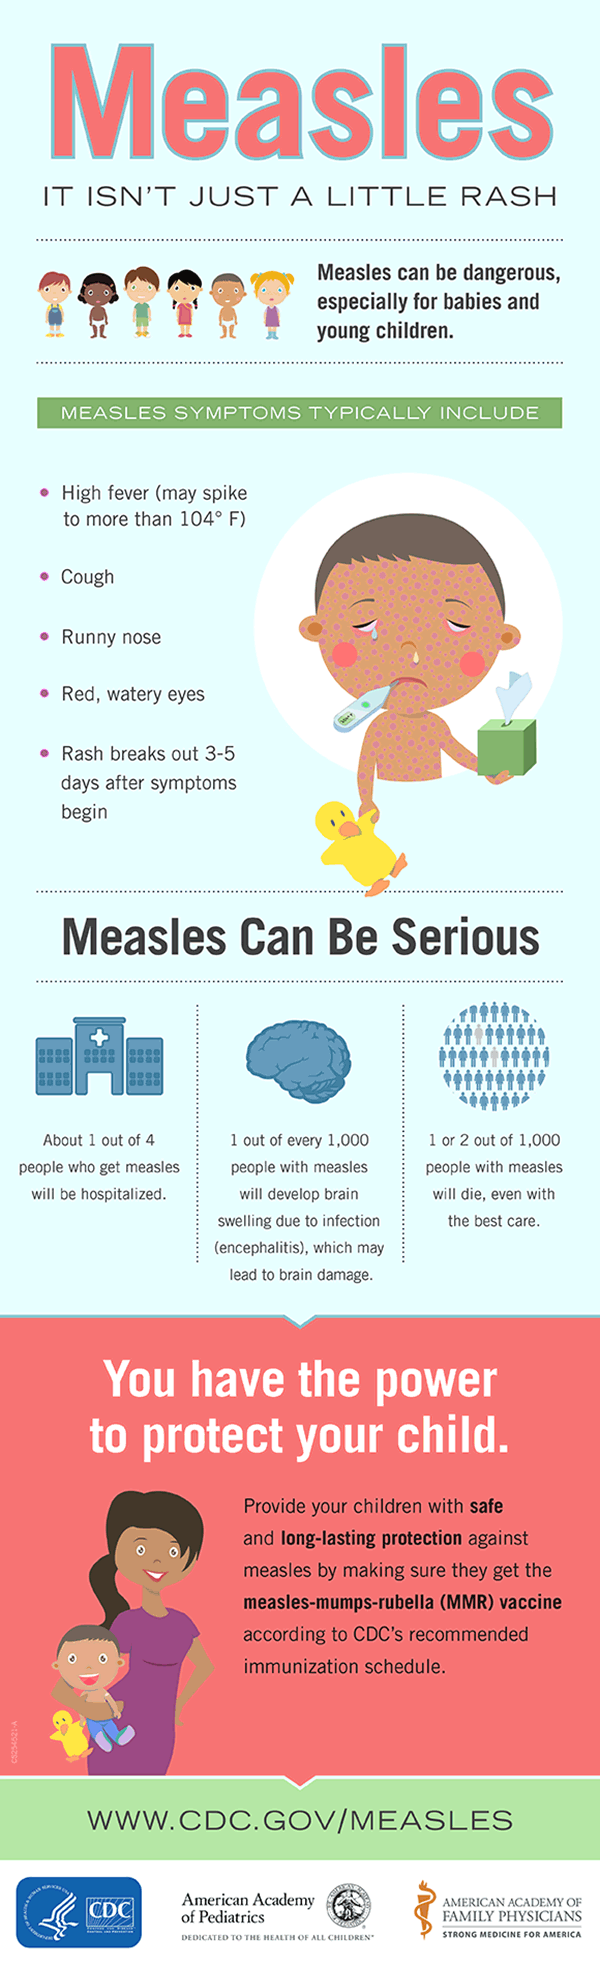 Measles Info-graph from the CDC